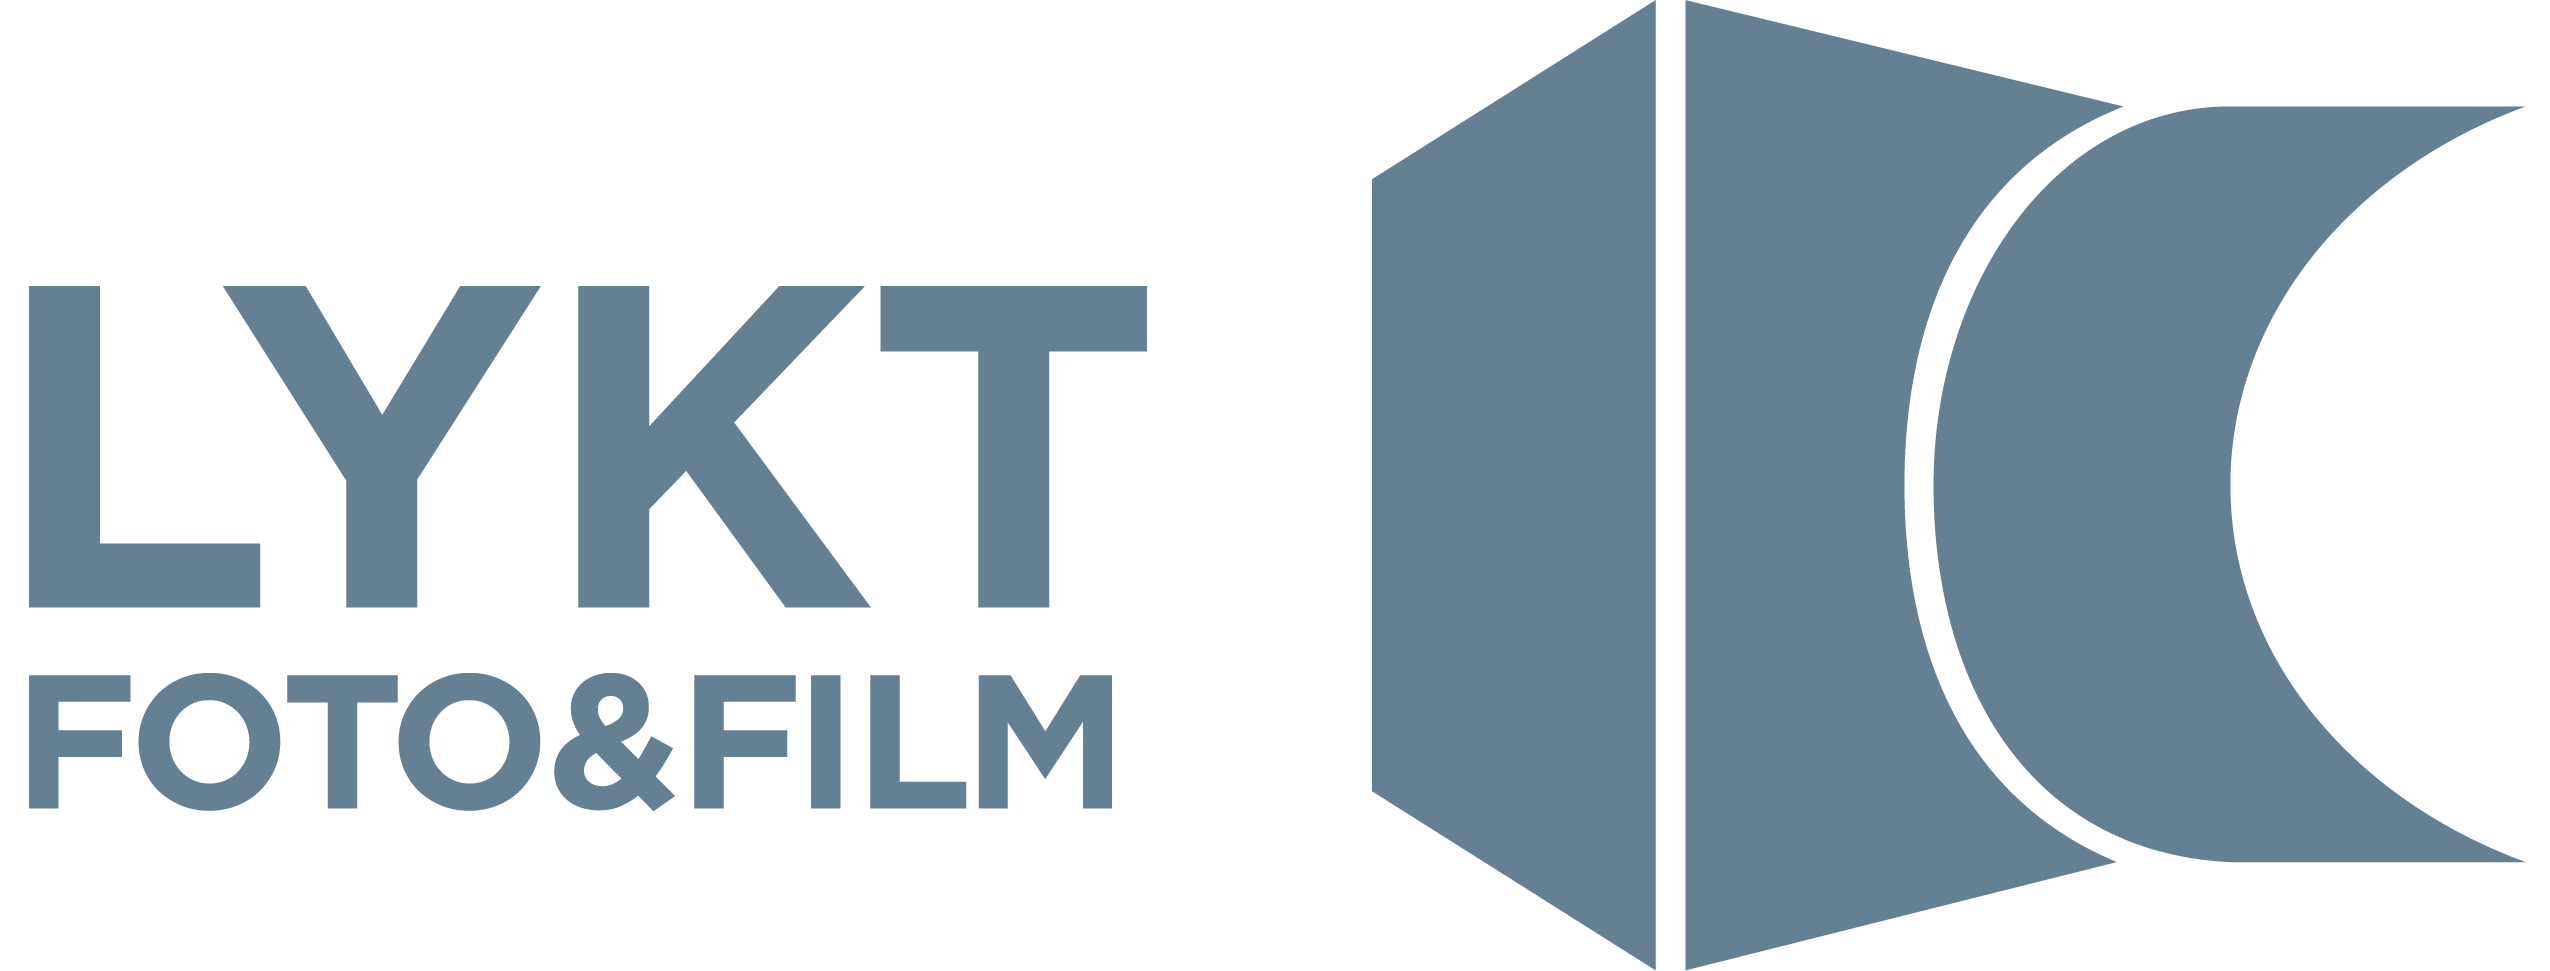 Logo for Lykt Foto og Film